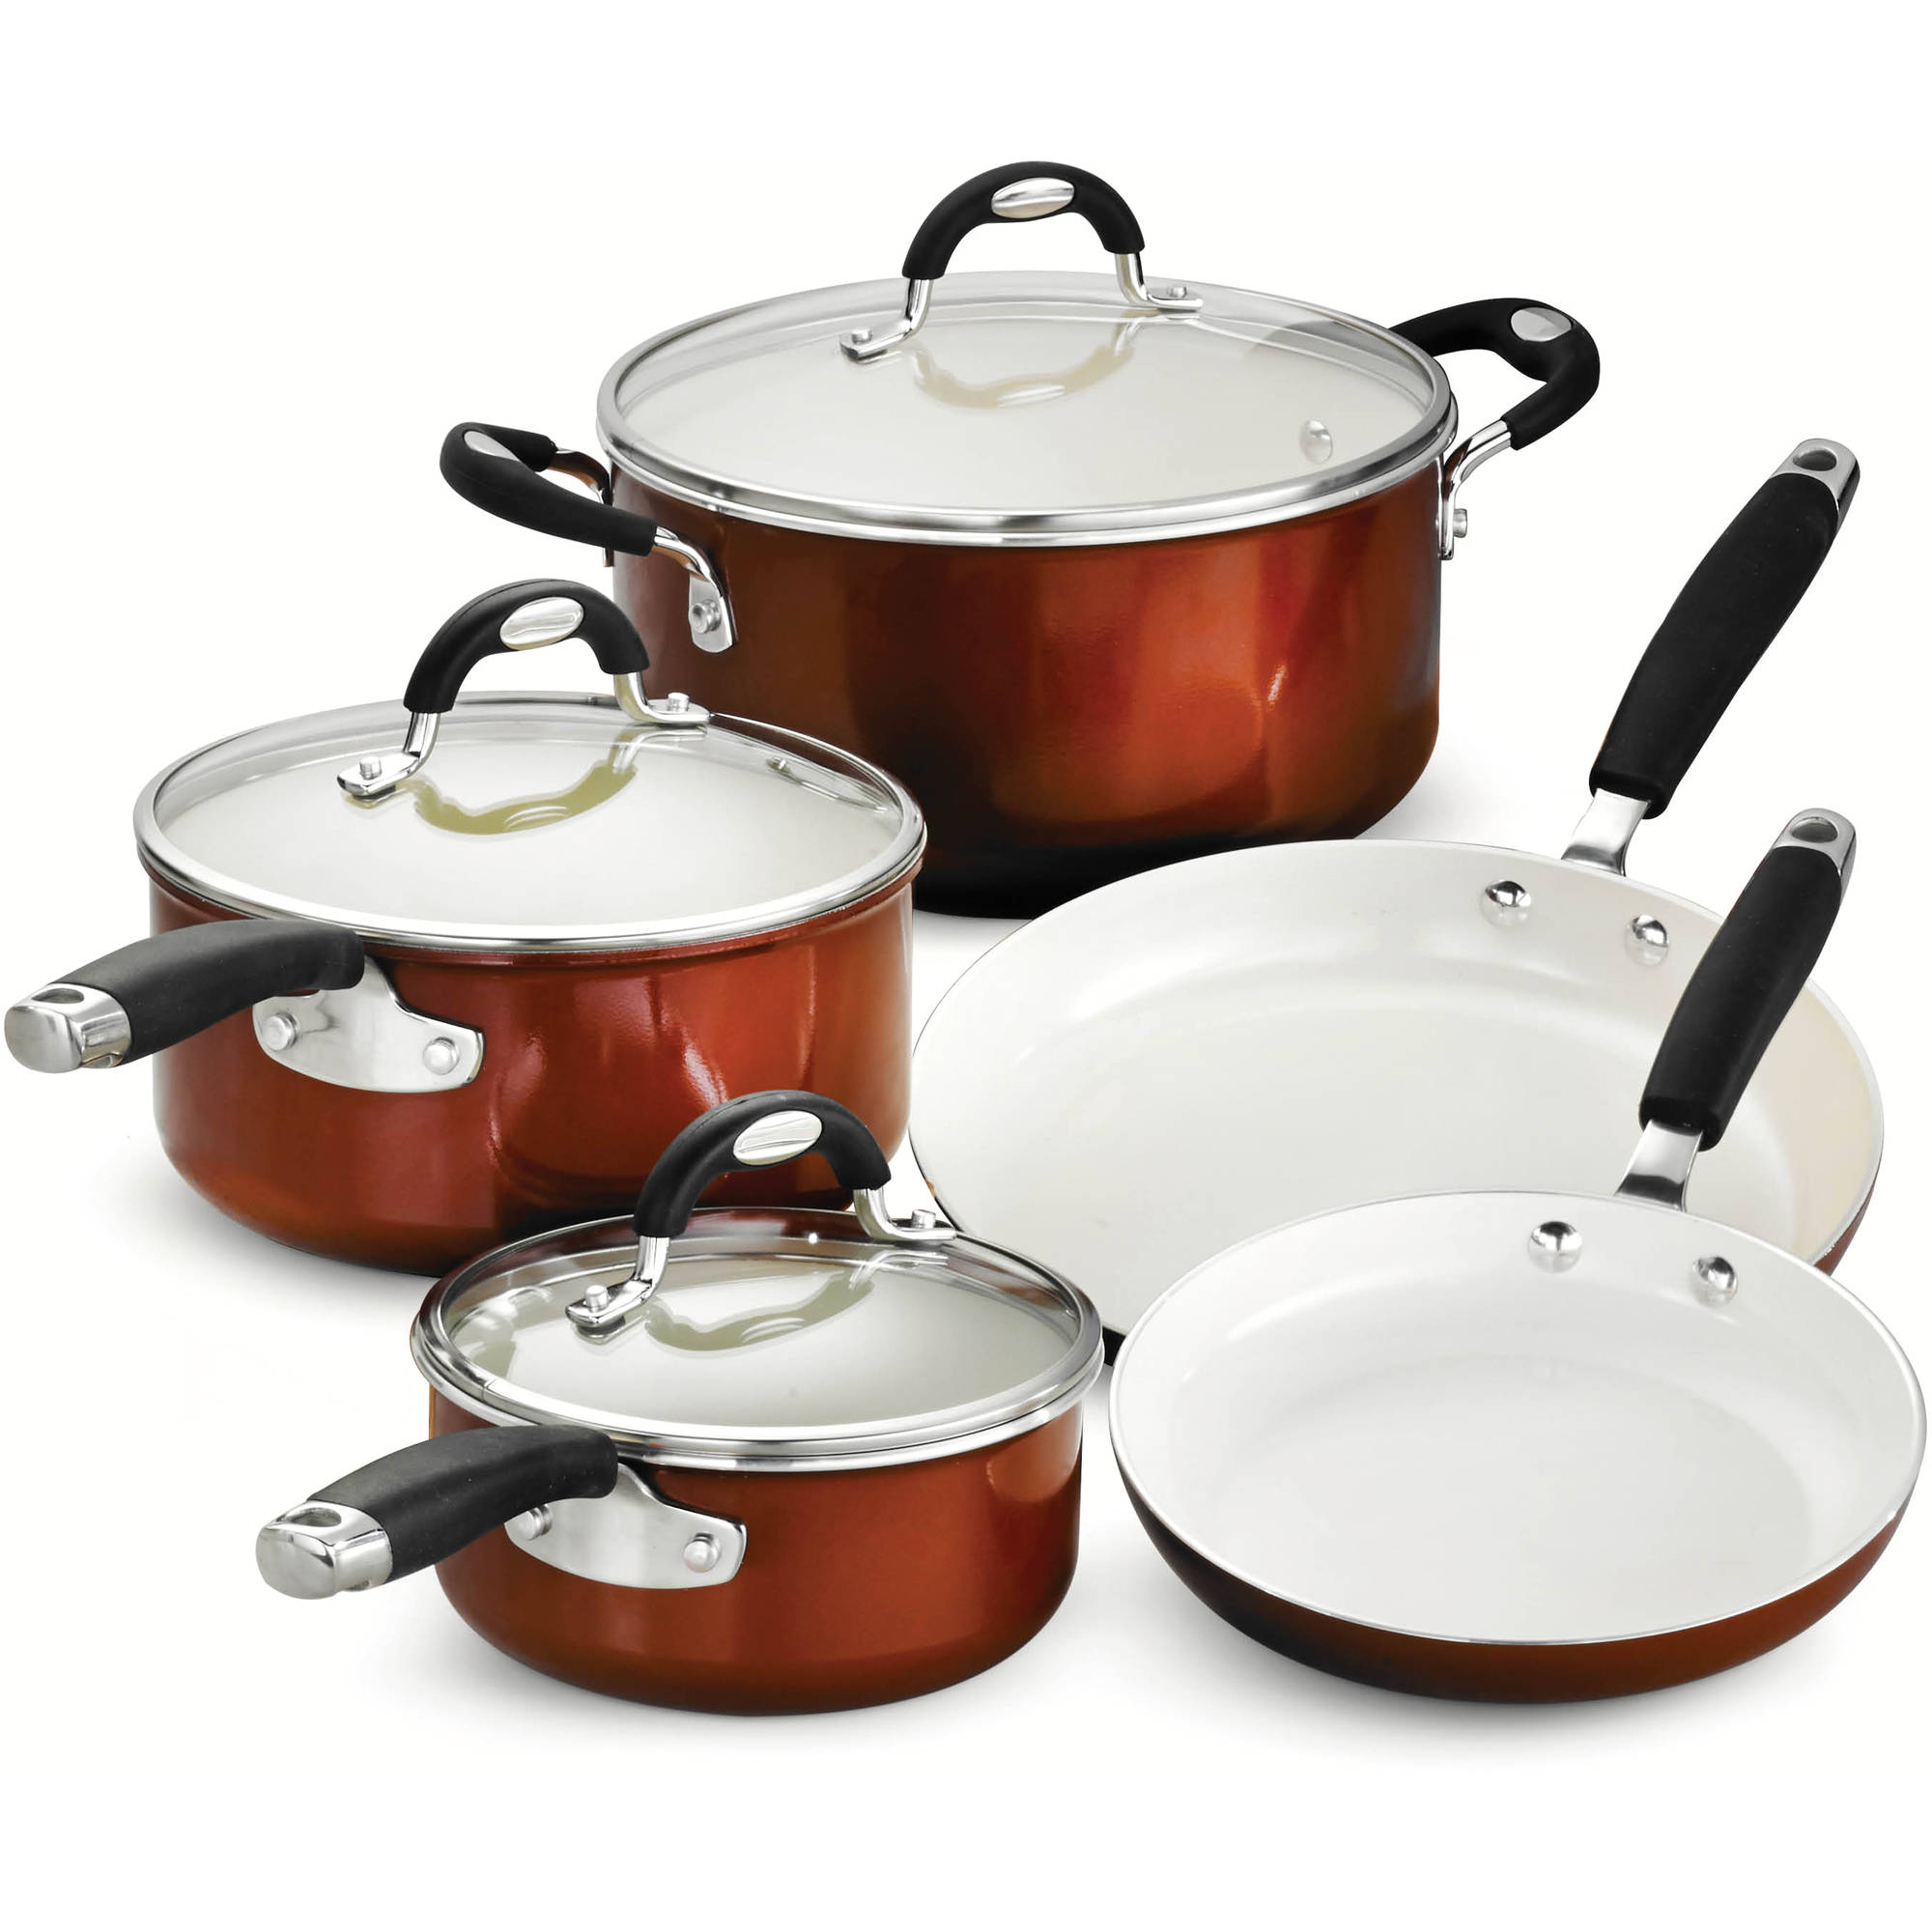 Tramontina Style 8-Piece Cookware Set, Metallic Copper